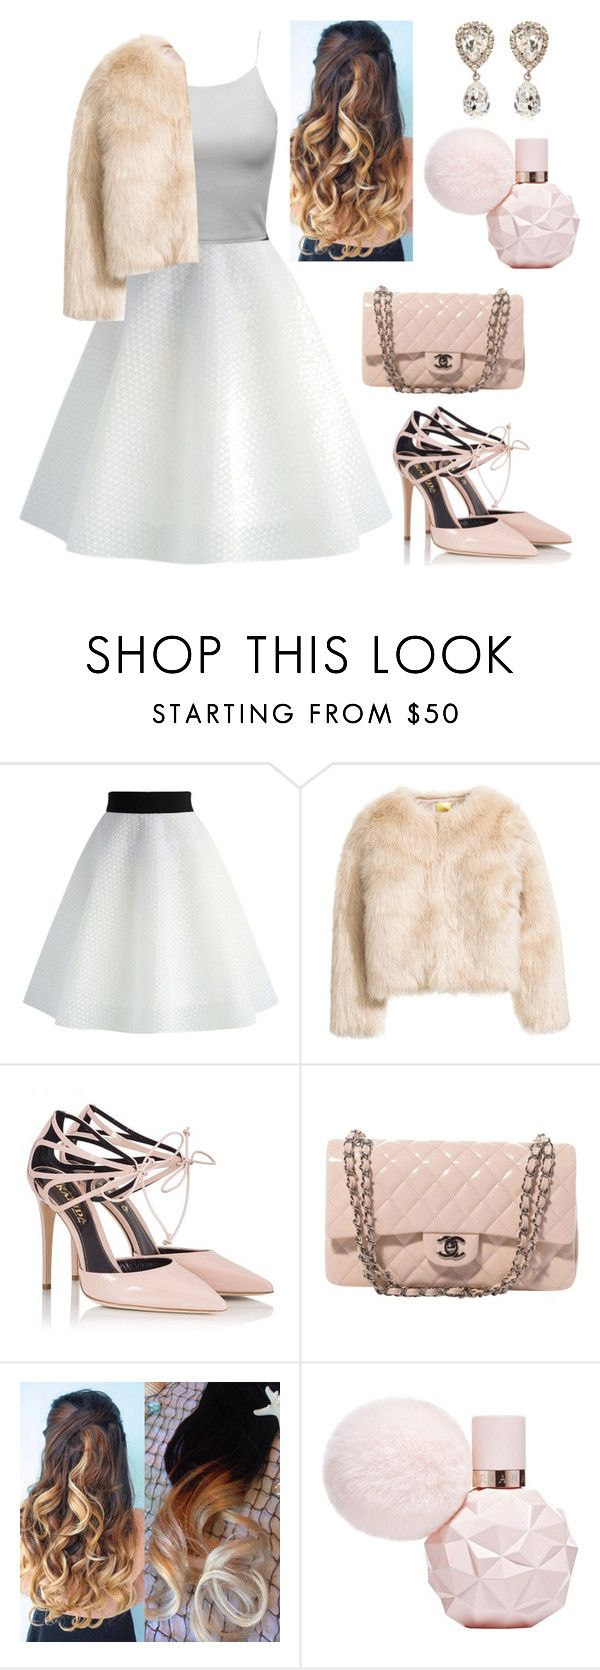 """""""Vintage Chic (Gabi DeMartino inspired)"""" by linagymnast ❤ liked on Polyvore featuring Chicwish, Fratelli Karida, Chanel, Dolce&Gabbana and vintage"""